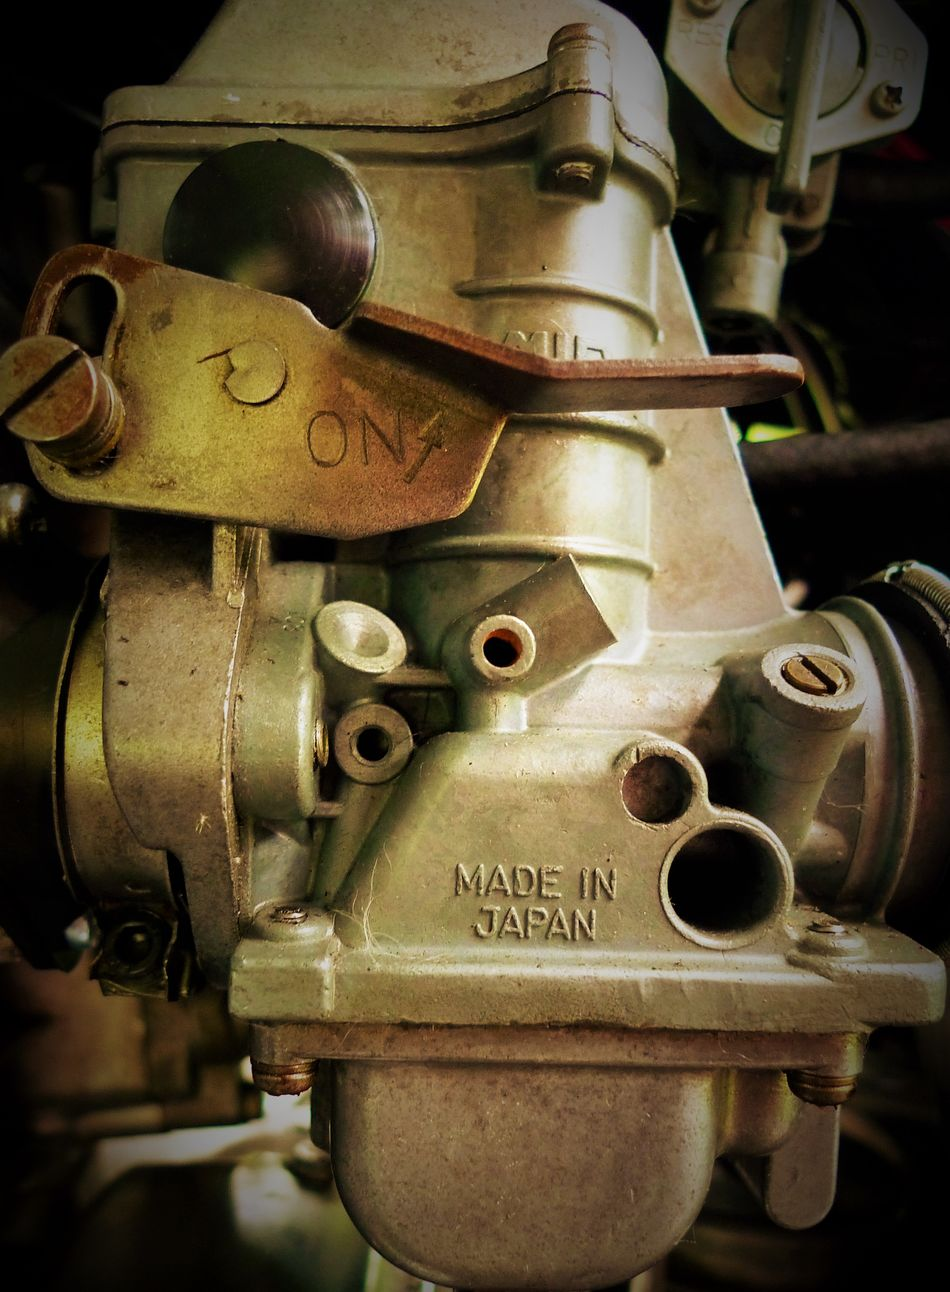 Carburetor Close-up Detail Deterioration Equipment Factory Focus On Foreground Industry Machine Part Machinery Man Made Object Metal Metallic No People Old Old-fashioned Part Of Retro Styled Selective Focus The Past